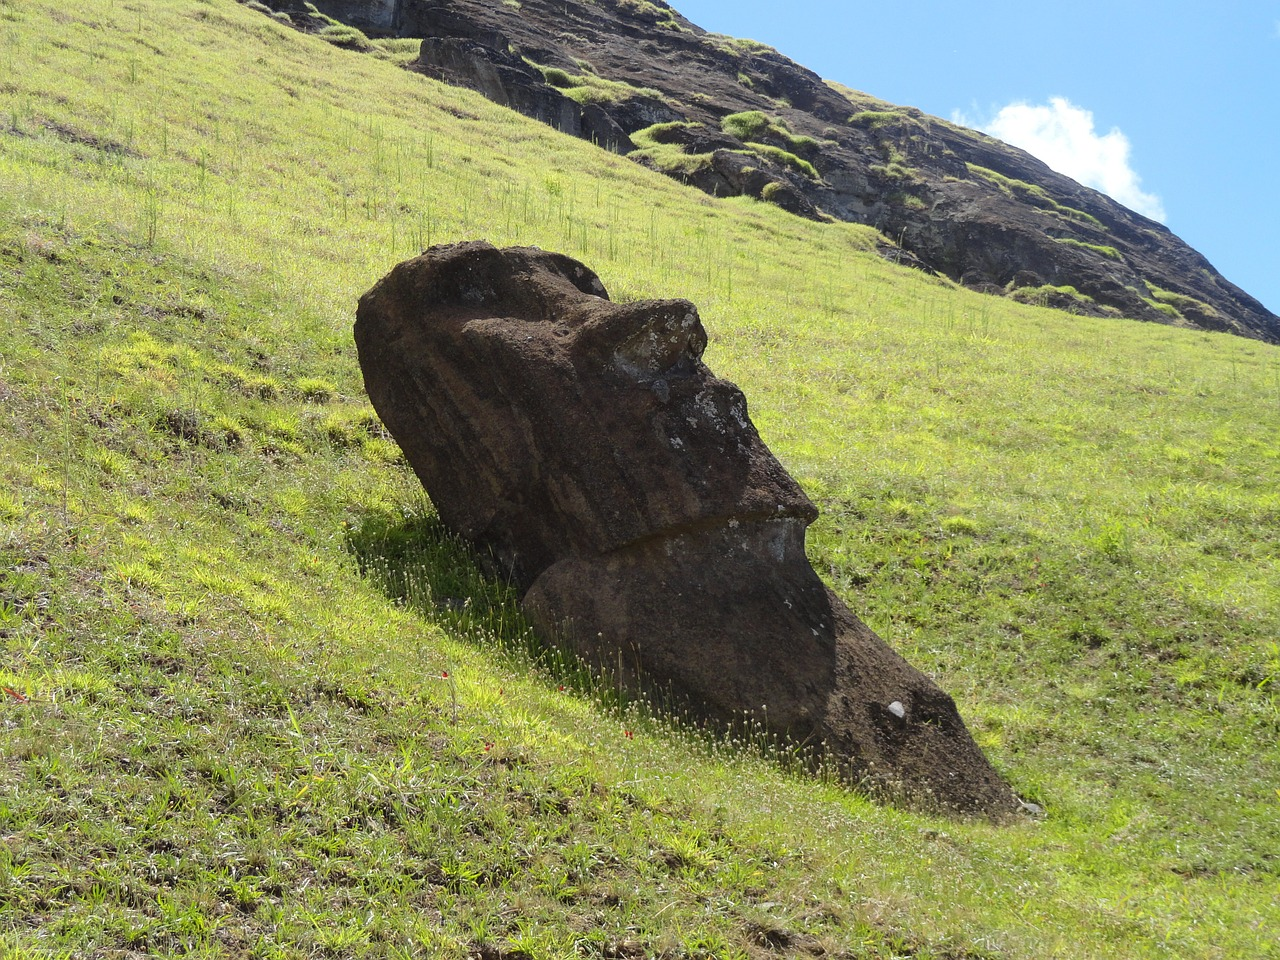 To explore Easter Island, will take a little ingenuity to get to, but once you are there, it will be well worth it.